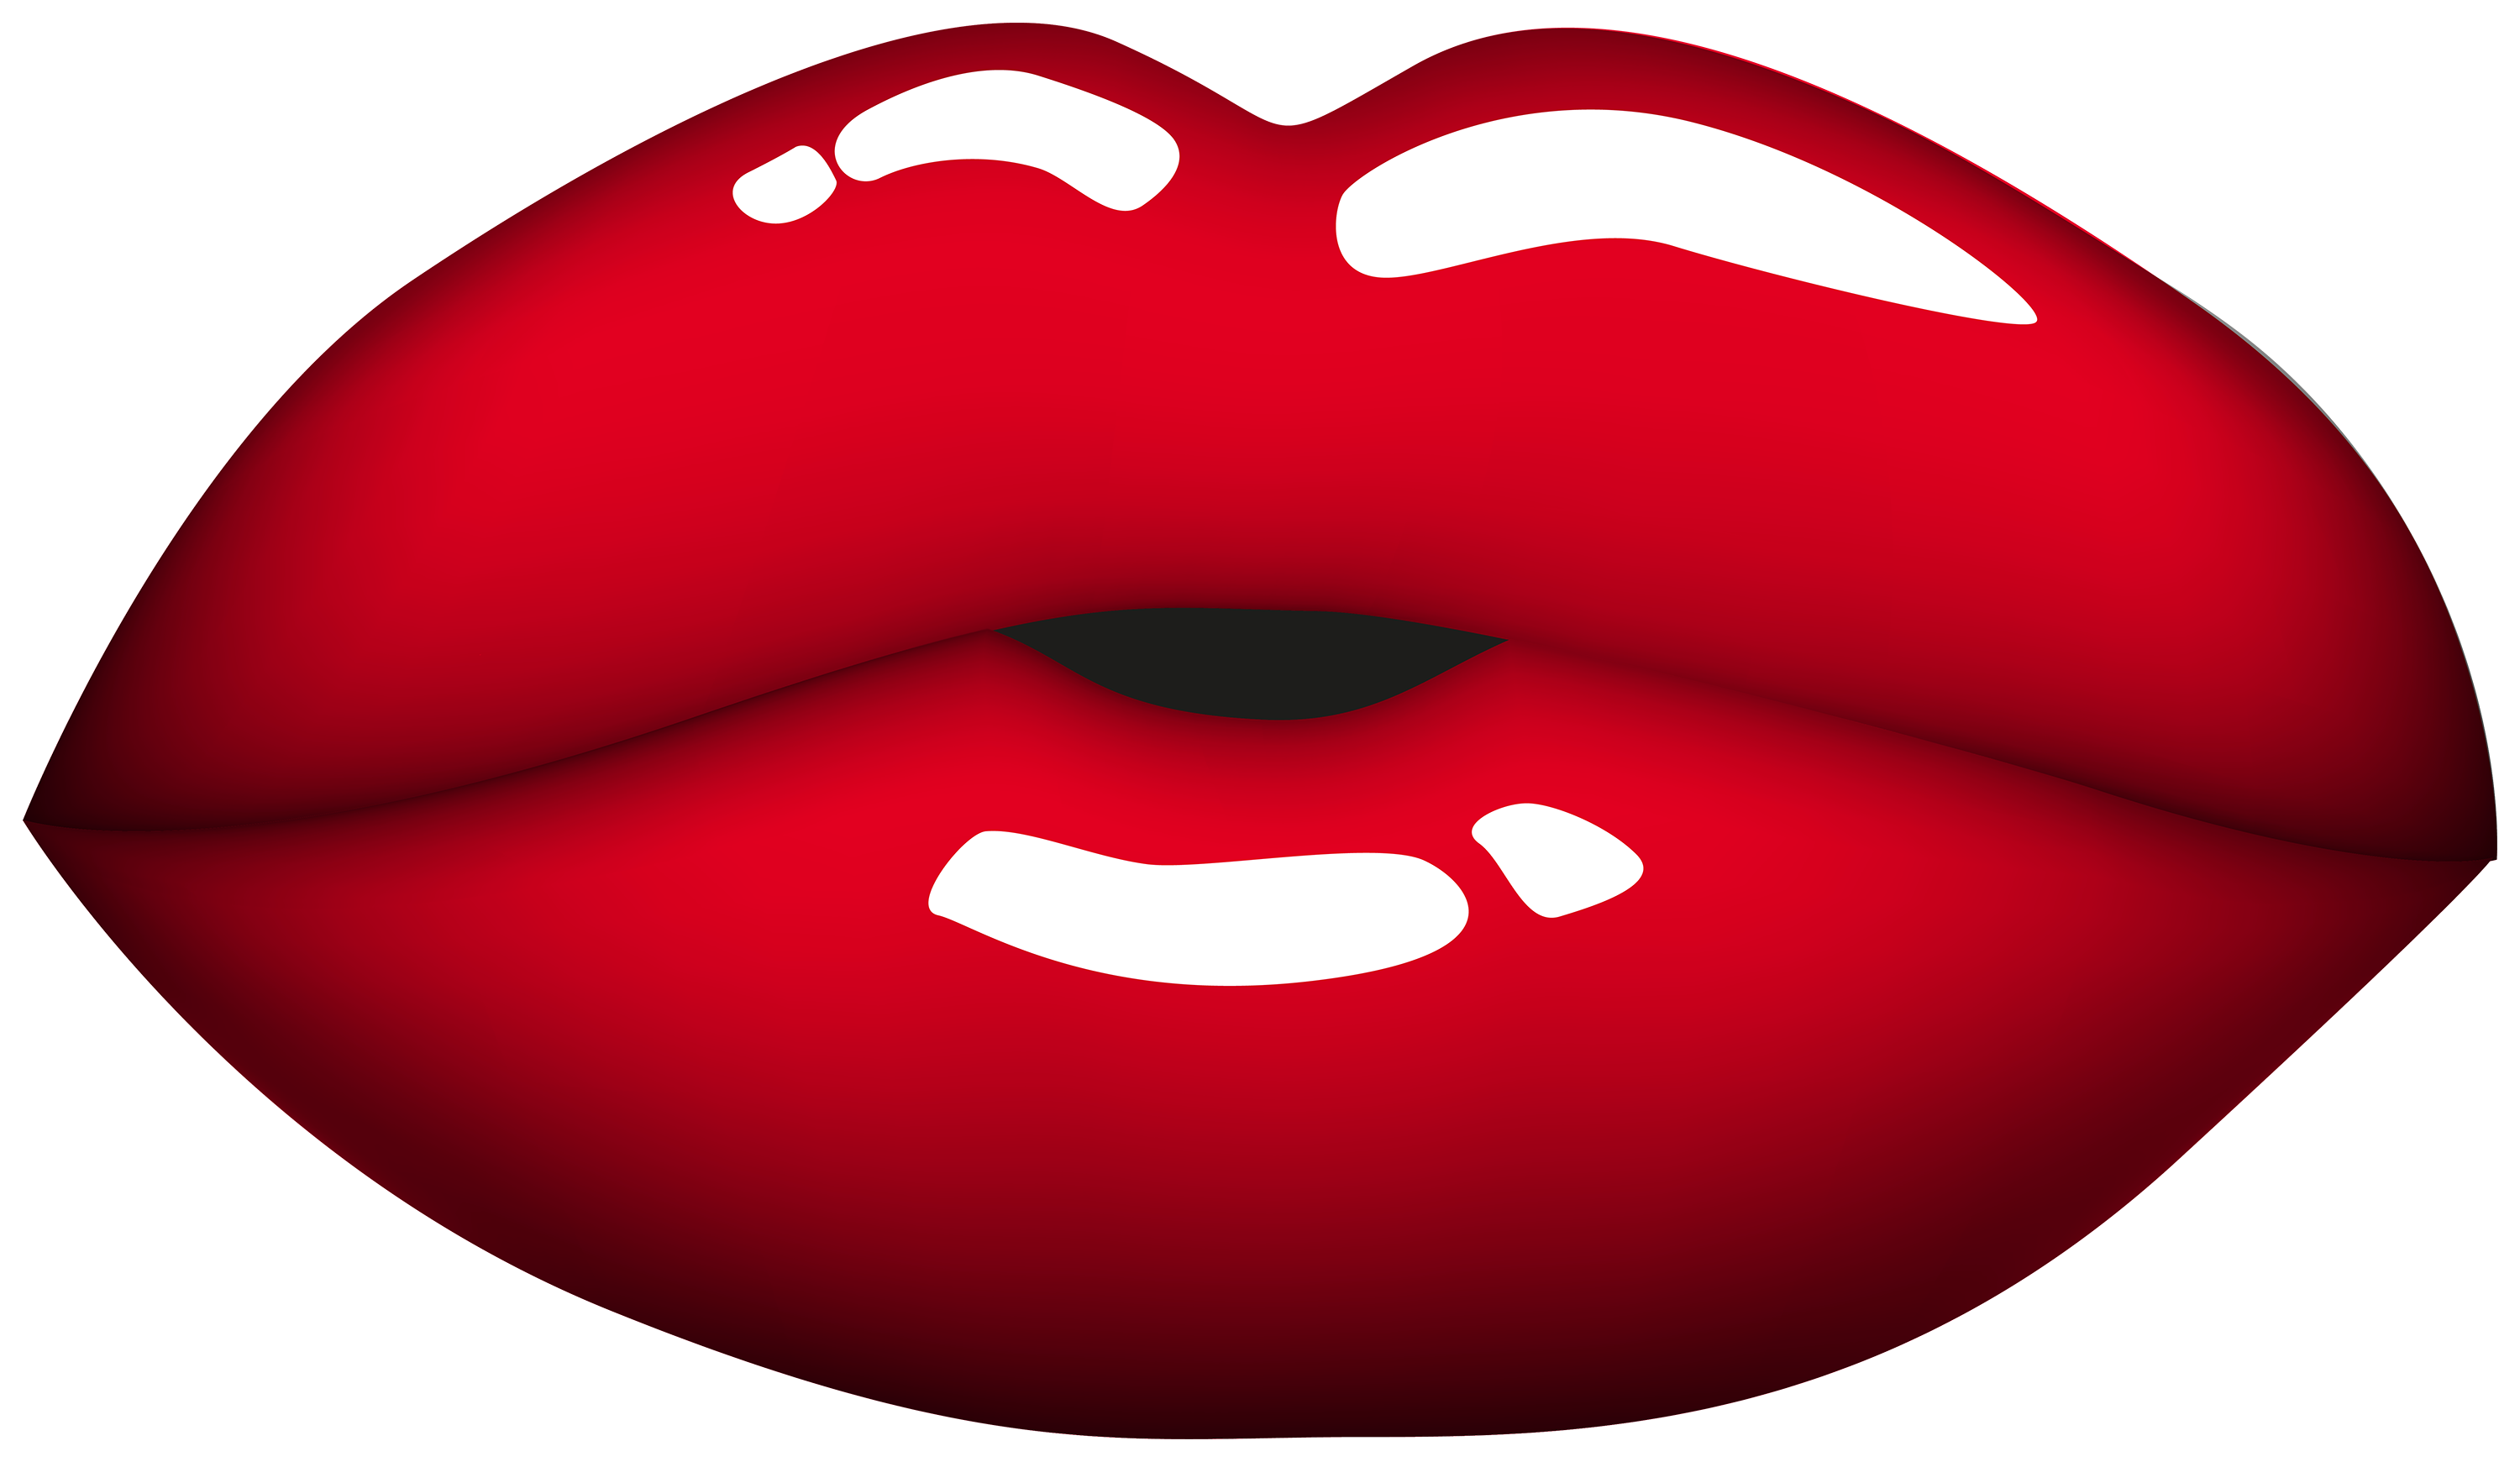 Smiling heart clipart clip library stock Lips Clipart at GetDrawings.com | Free for personal use Lips Clipart ... clip library stock